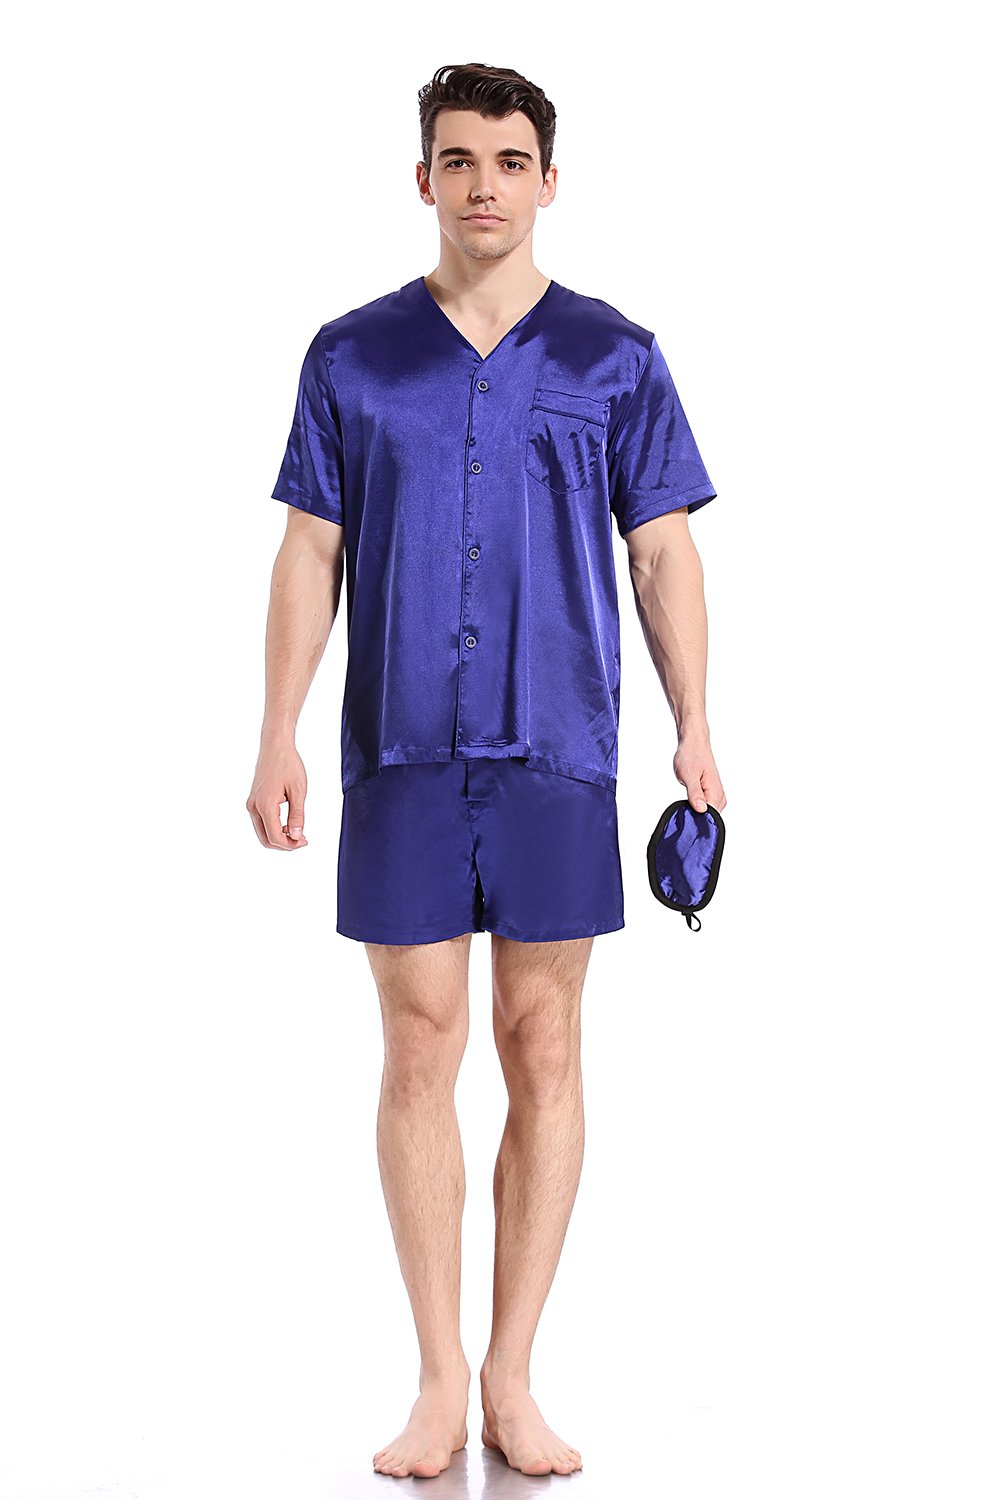 Like2sea Summer Silky Satin Pajamas for Men, Short V-Neck Button Down PJ Set with Mask, Blue, XL by Like2sea (Image #1)